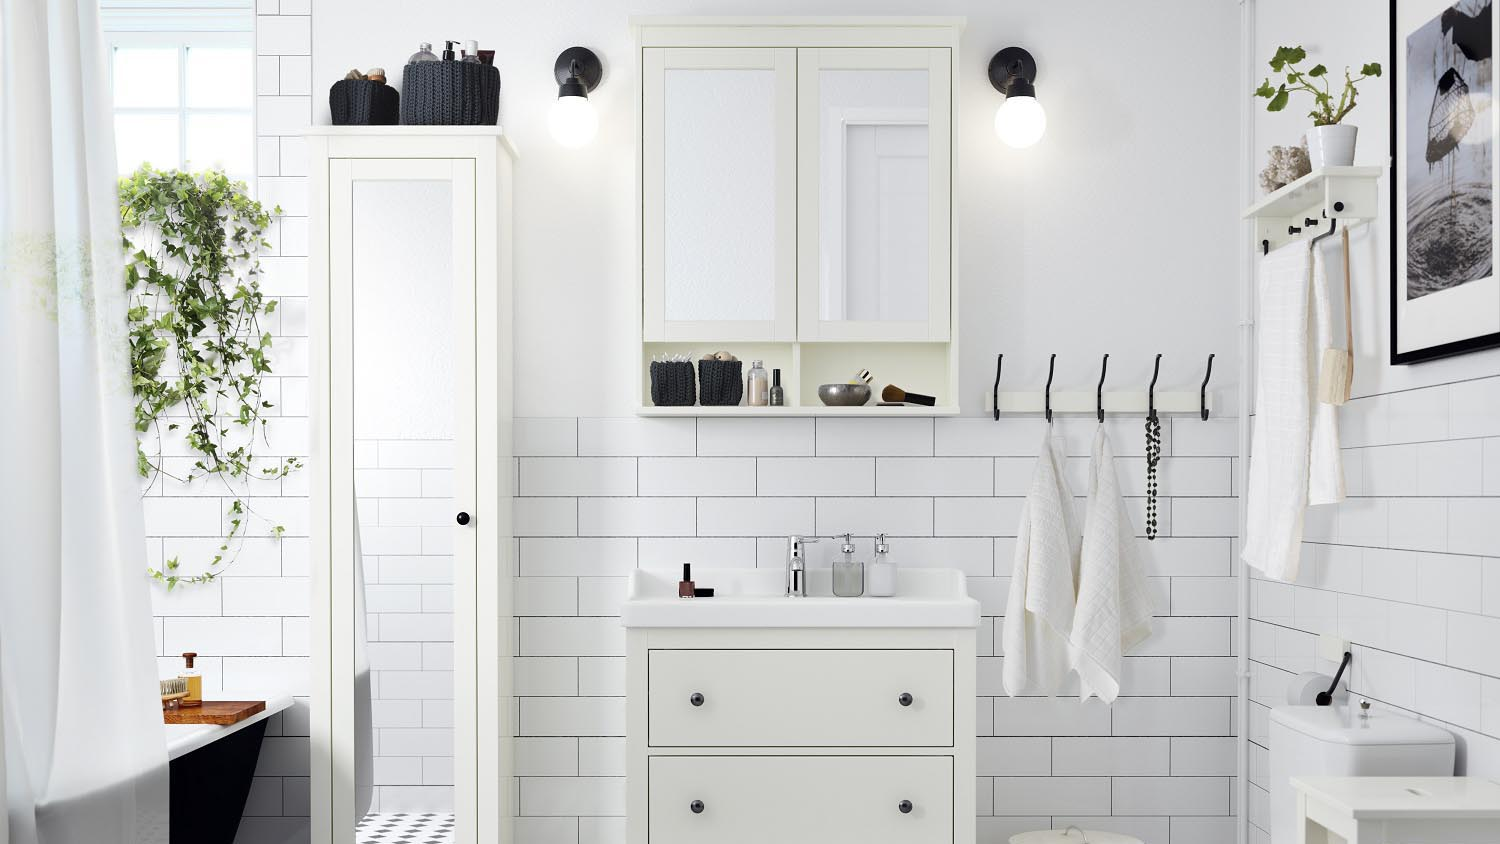 20 bathroom design ideas – on any budget | Real Homes